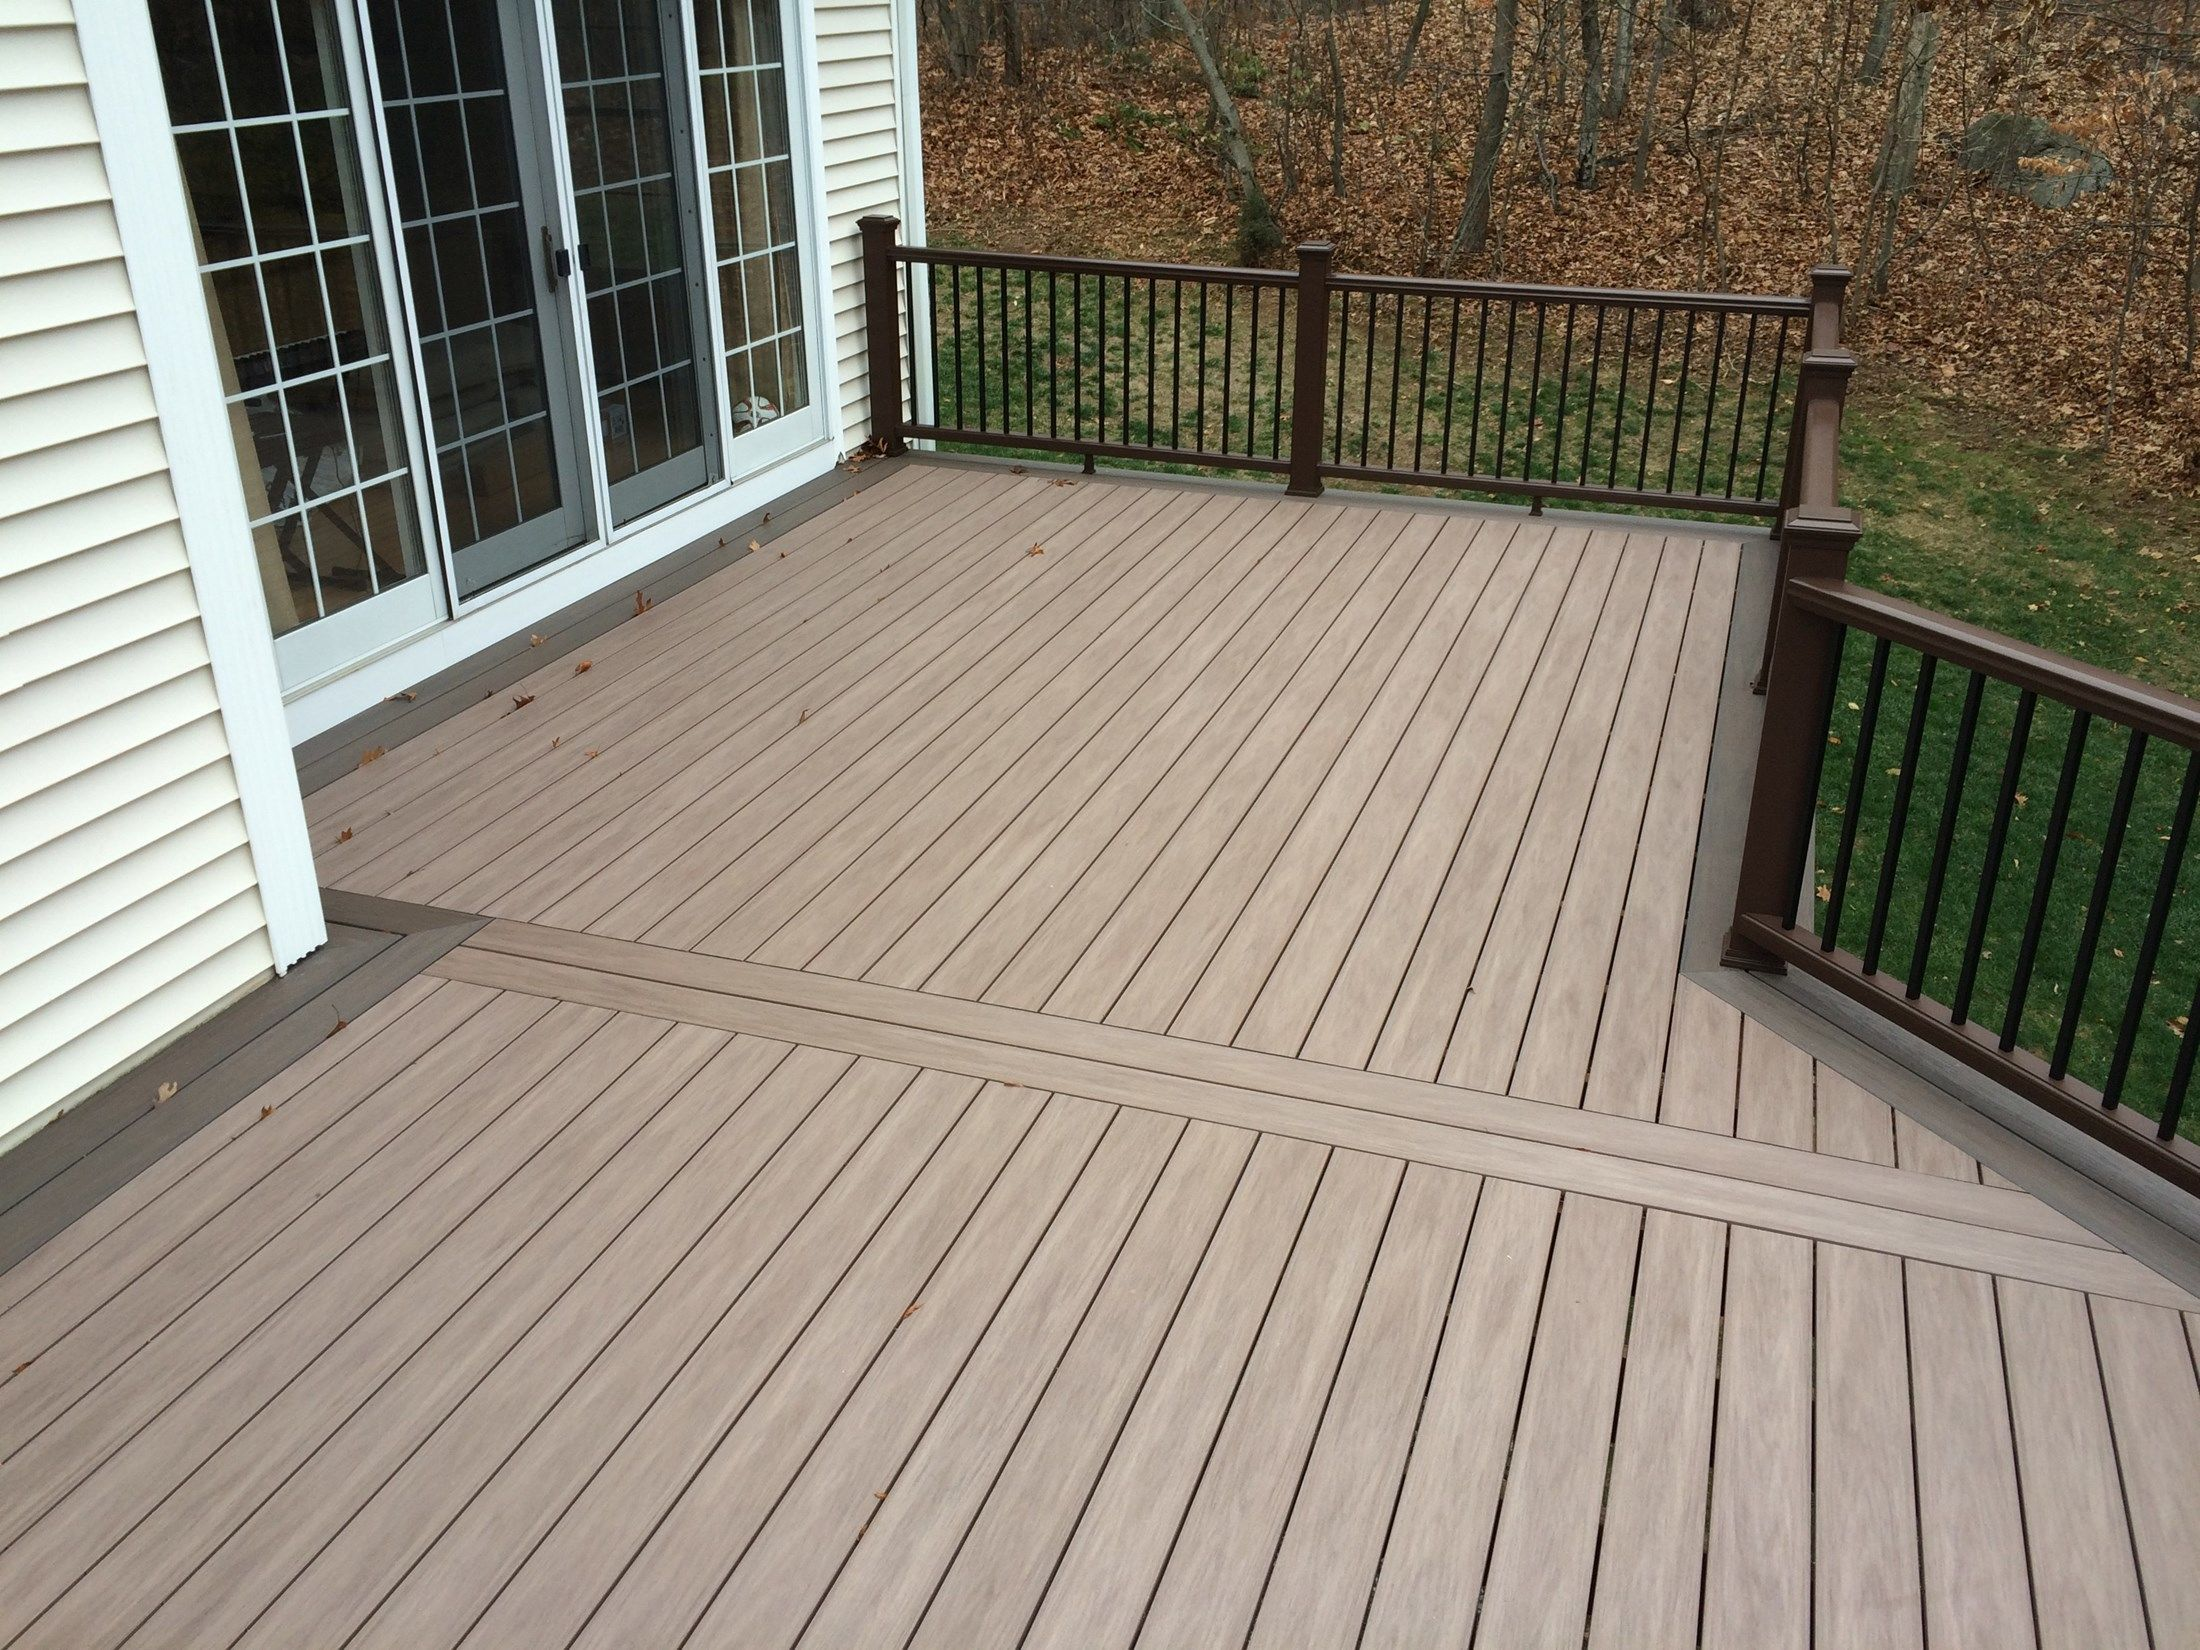 Second Story Deck - Picture 3840